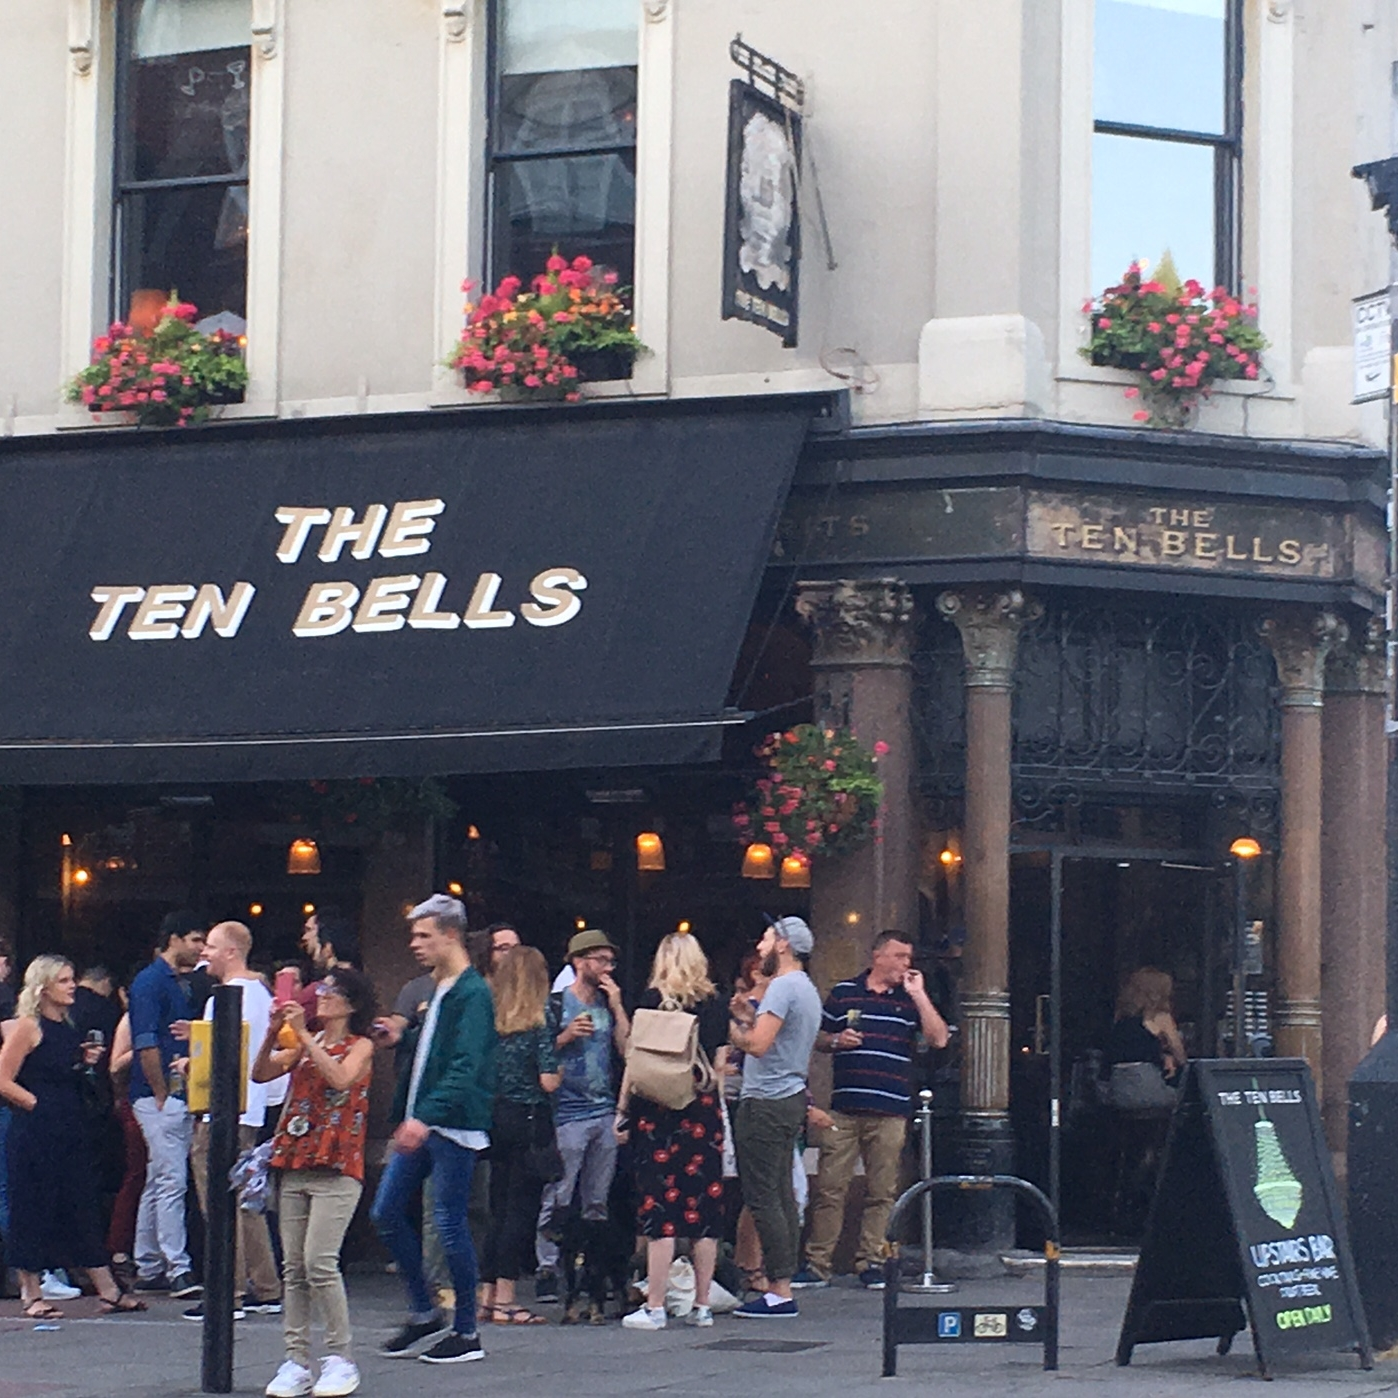 The Ten Bells pub, London by The Doubtful Traveller